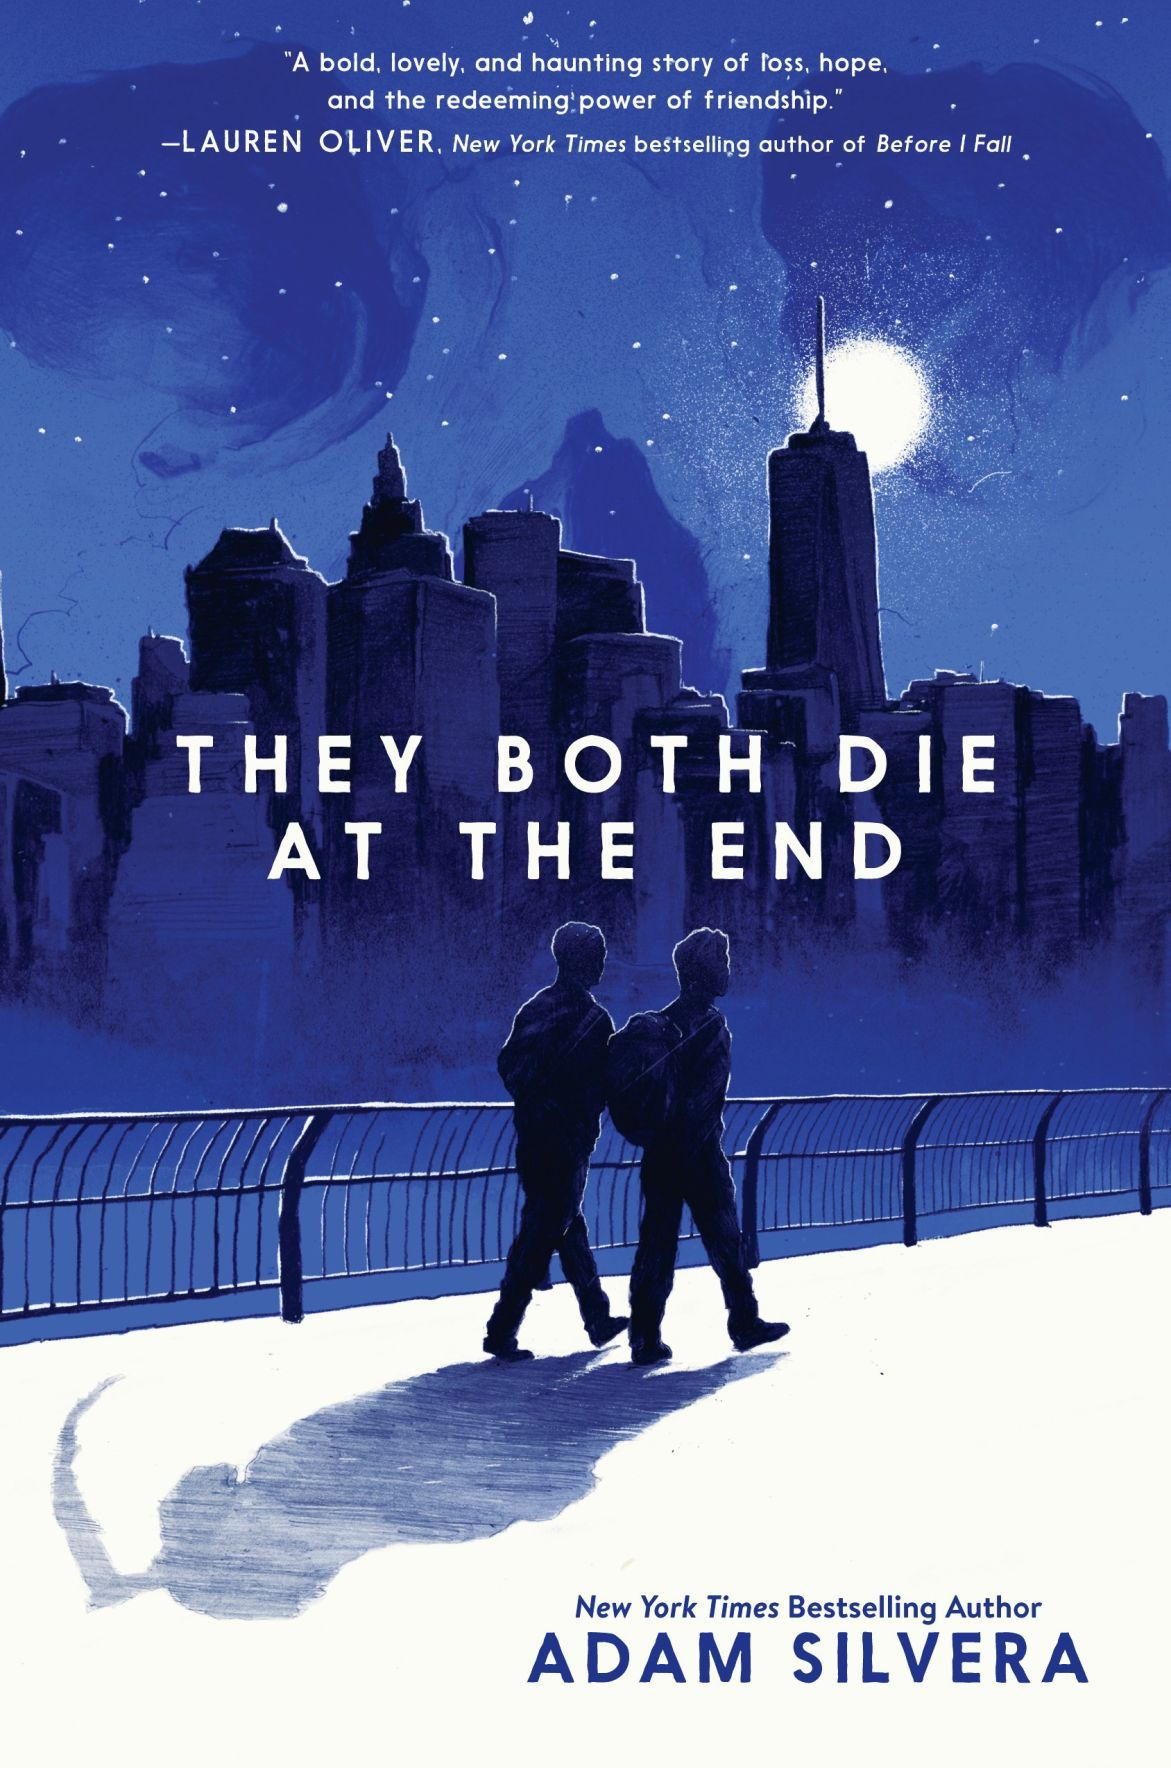 Review: 'They Both Die at the End' a thrilling tale